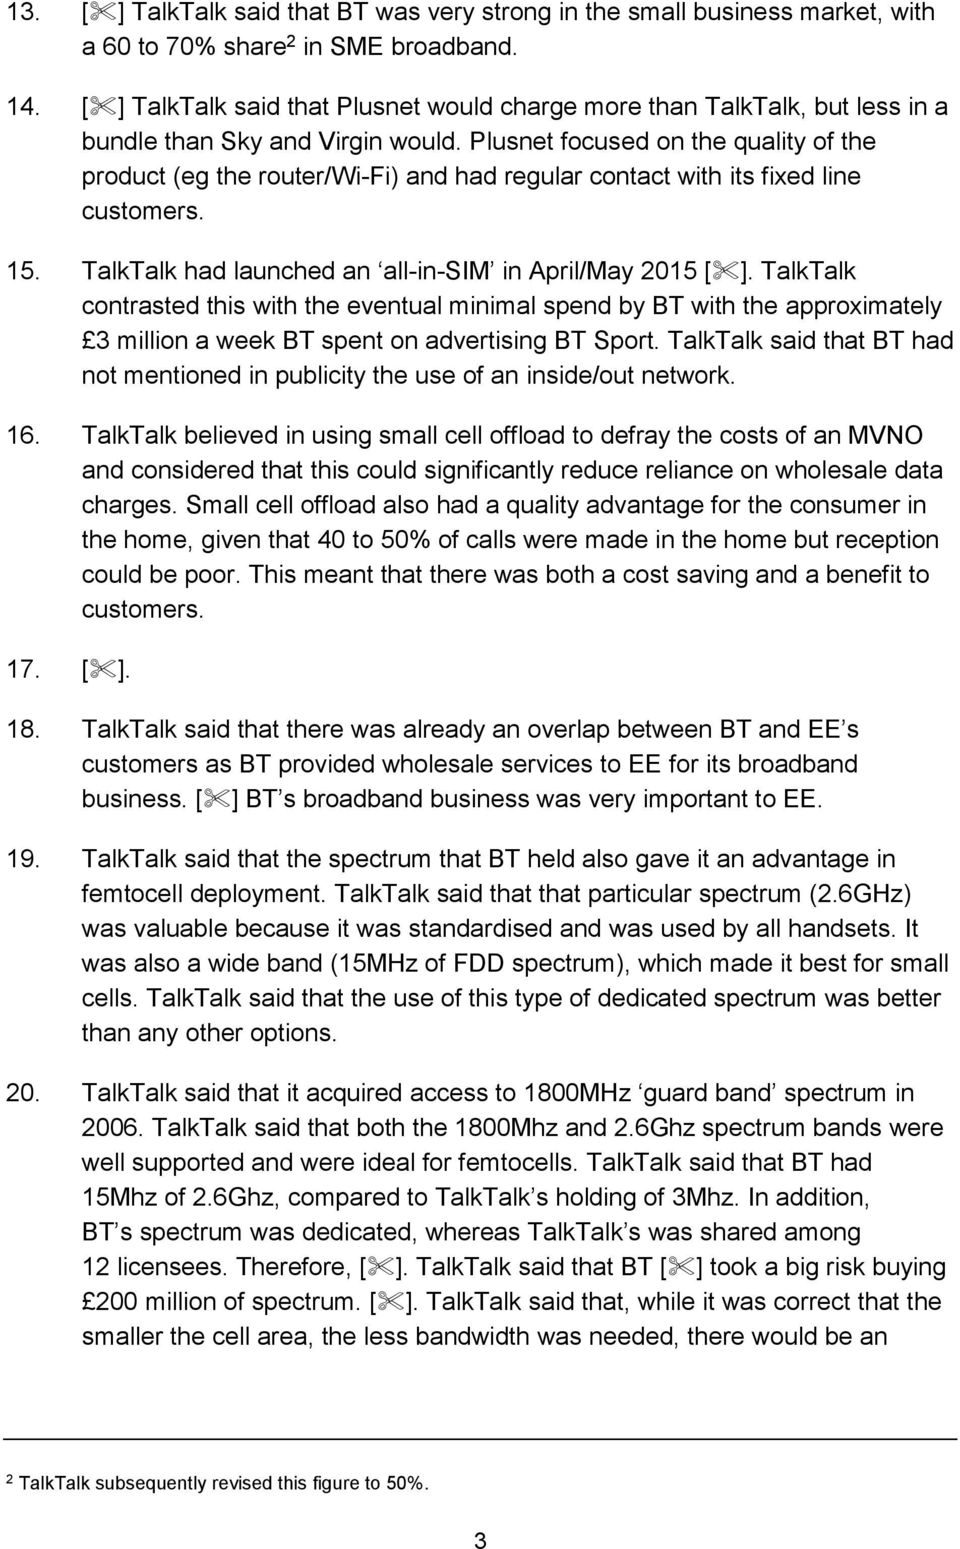 Plusnet focused on the quality of the product (eg the router/wi-fi) and had regular contact with its fixed line customers. 15. TalkTalk had launched an all-in-sim in April/May 2015 [ ].